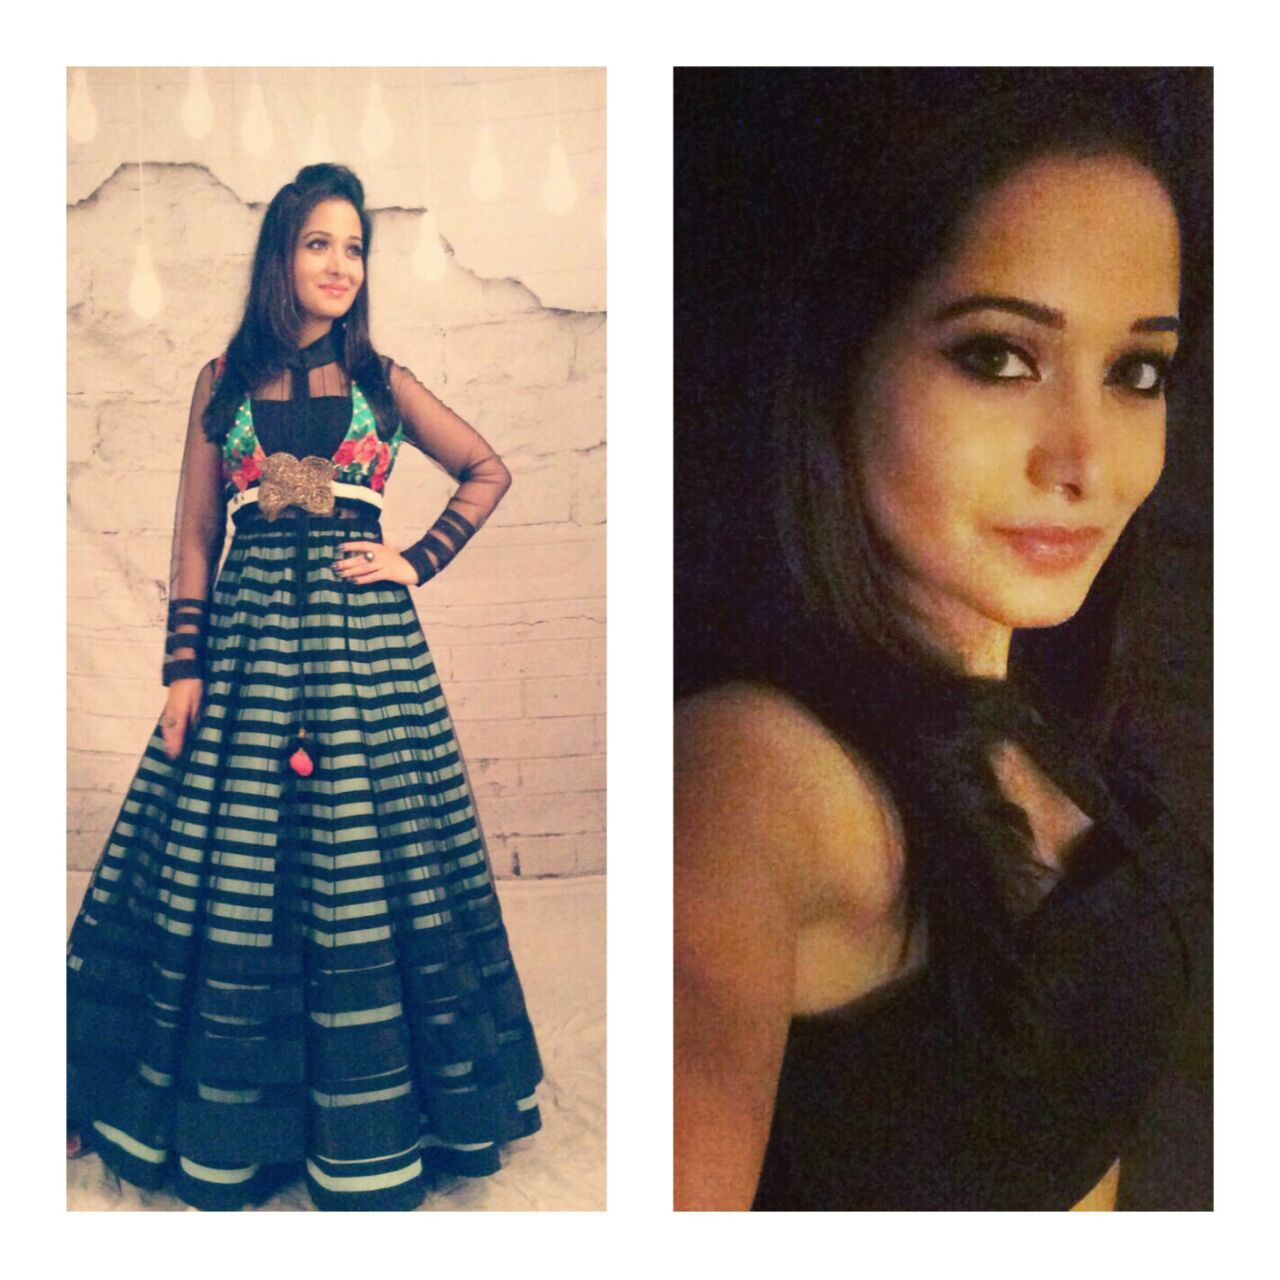 Actress Preetika Rao